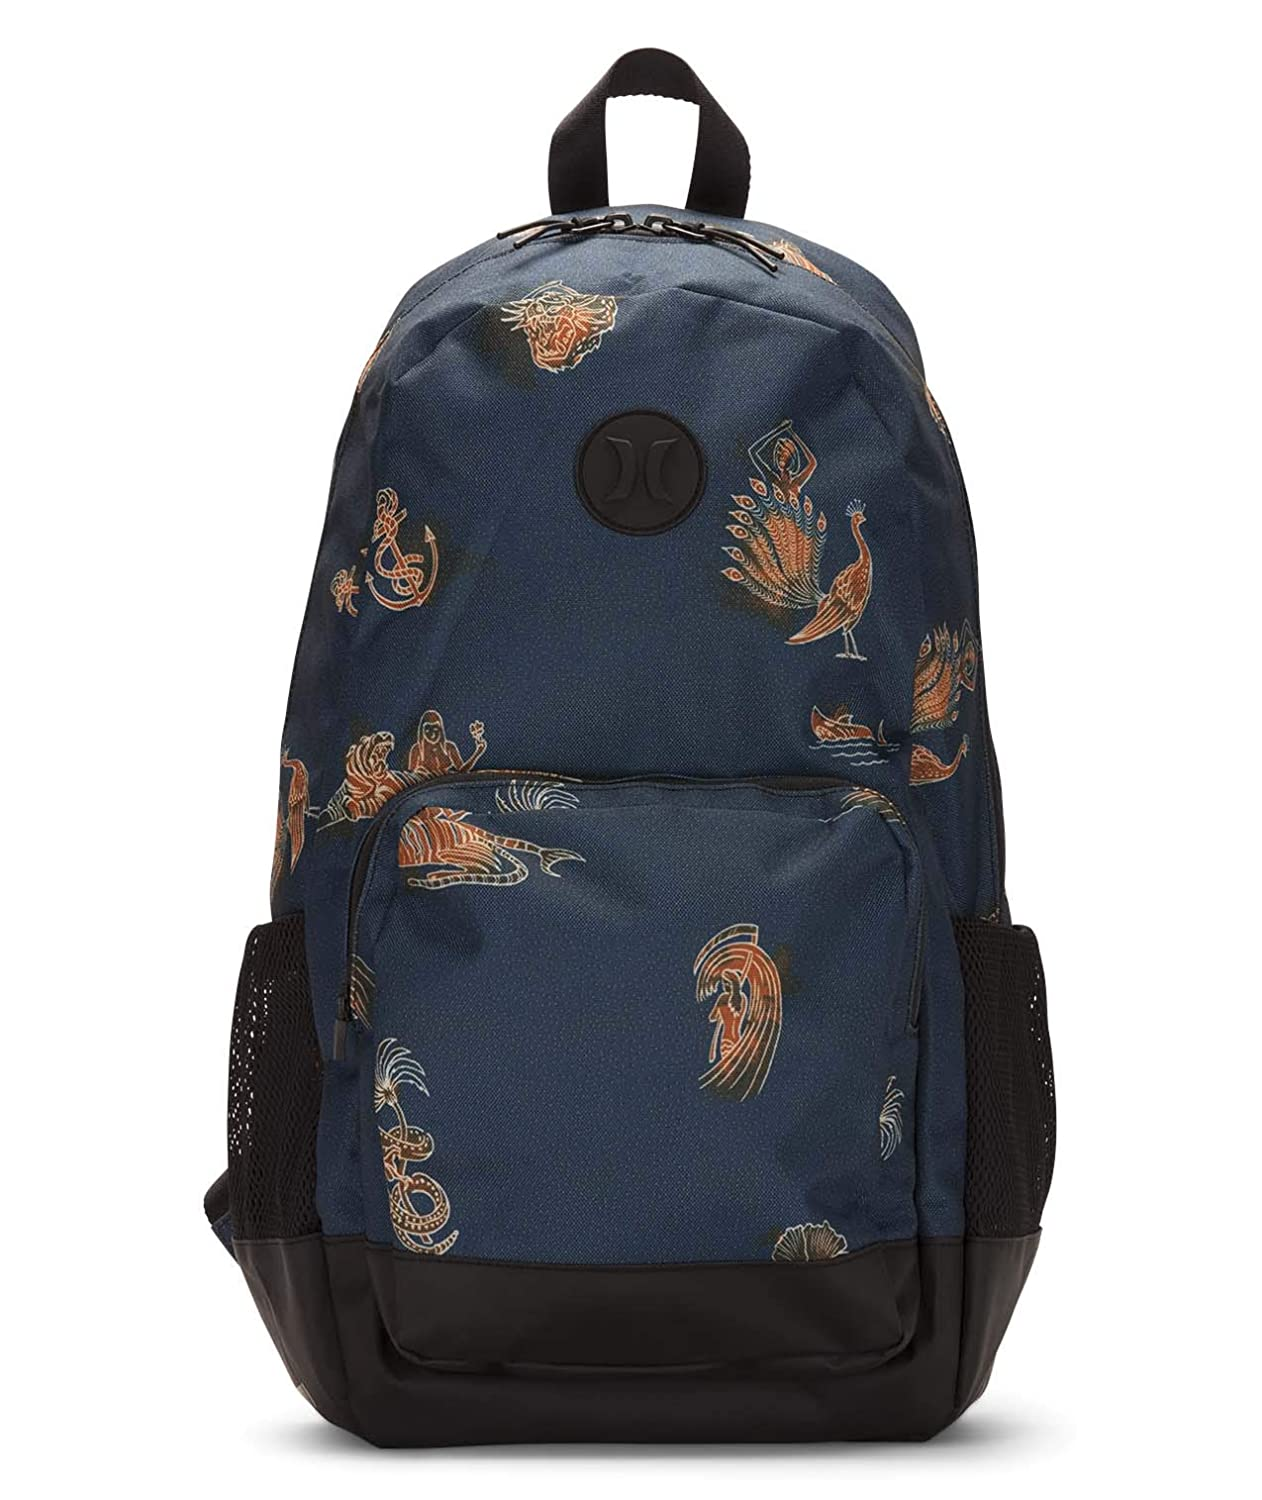 Hurley Men's Renegade Printed Laptop Backpack Blue Force Qty HU0011